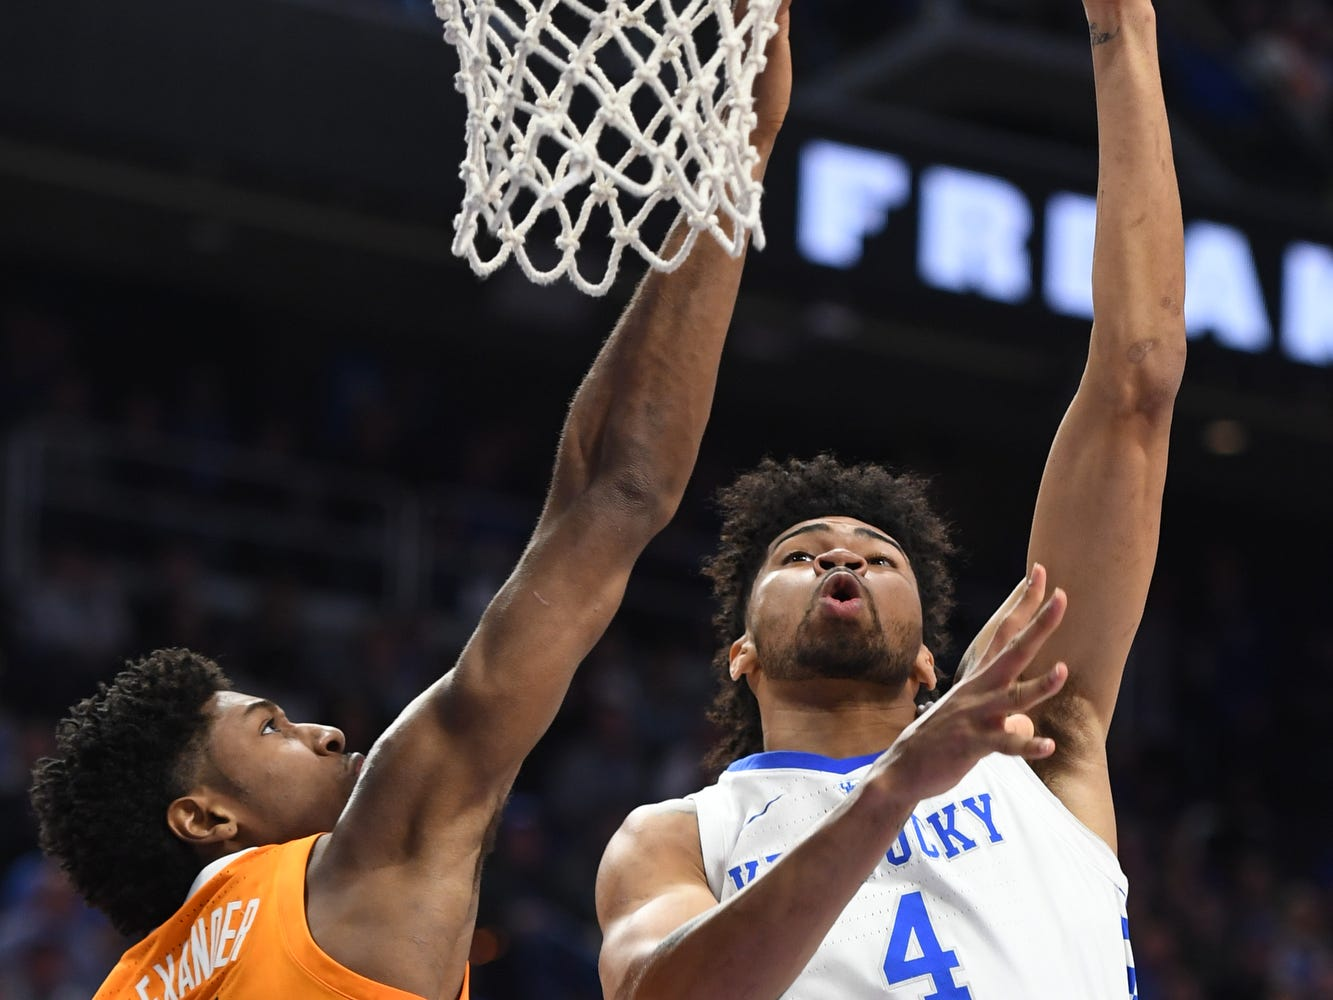 UK F Nick Richards puts up the ball during the University of Kentucky mens basketball game against Tennessee at Rupp Arena in Lexington, Kentucky on Saturday, February 16, 2019.